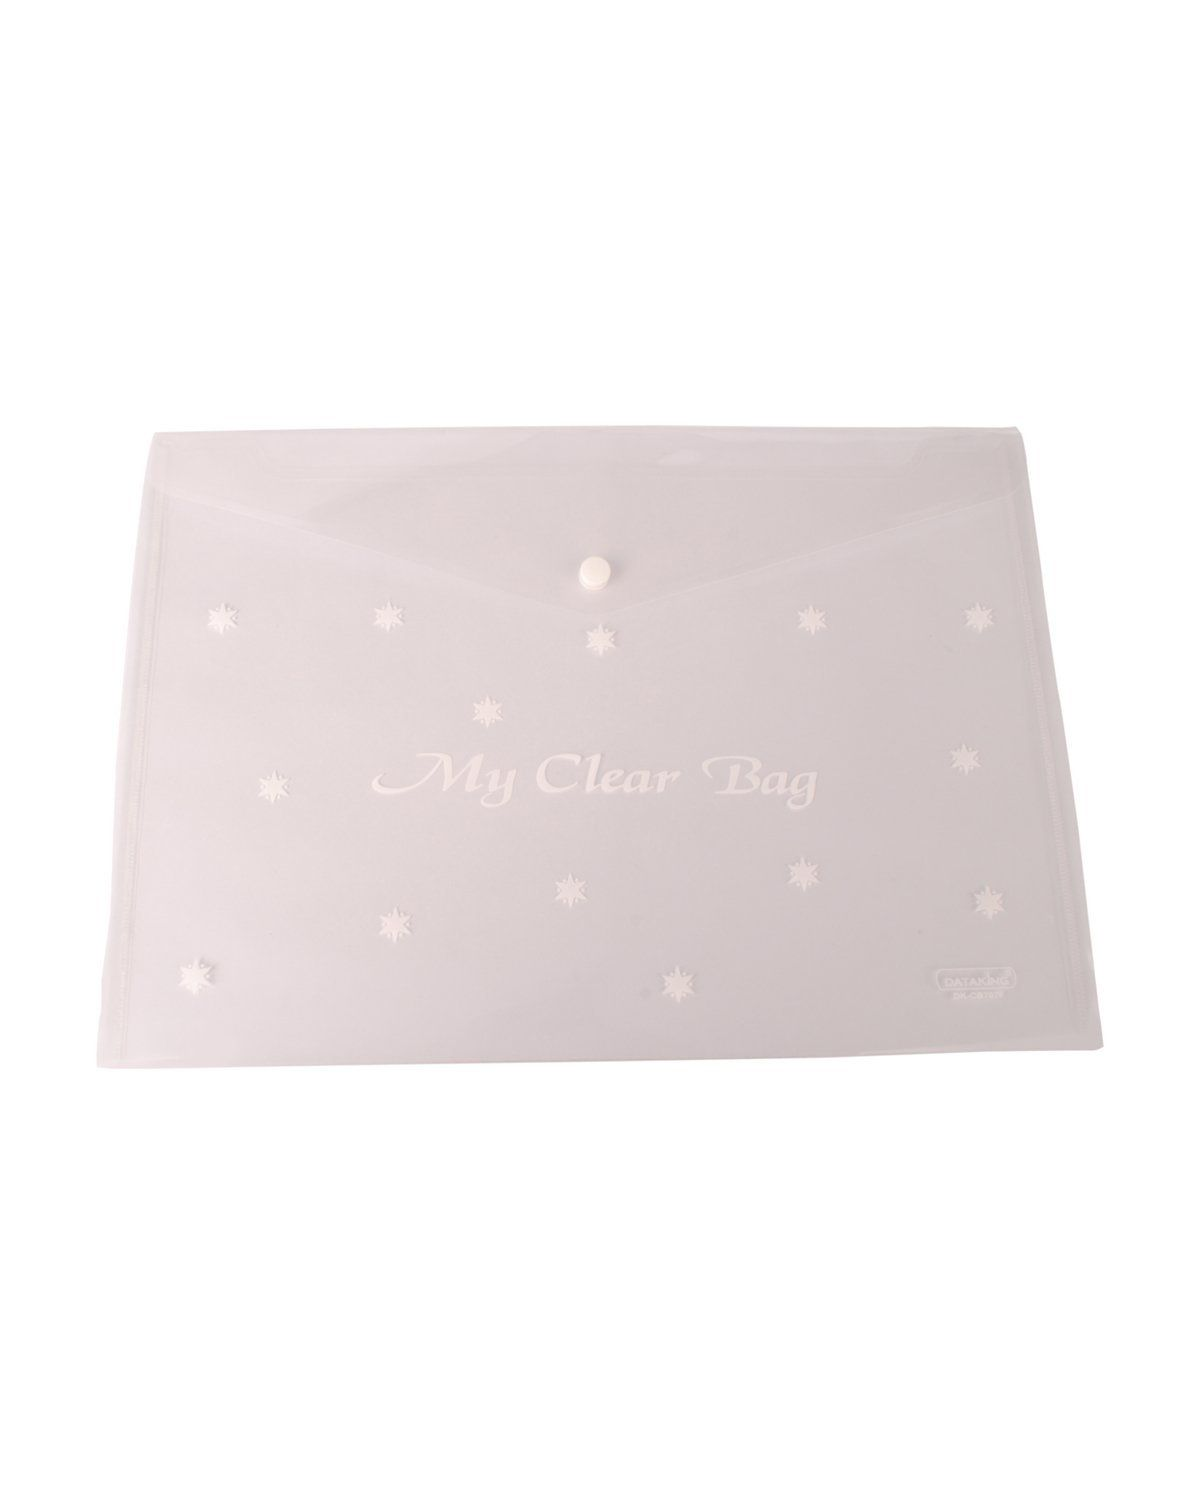 DataKing My Clear Bag With Star Print,, Set Of 12, Color: Natural, Size: FC.